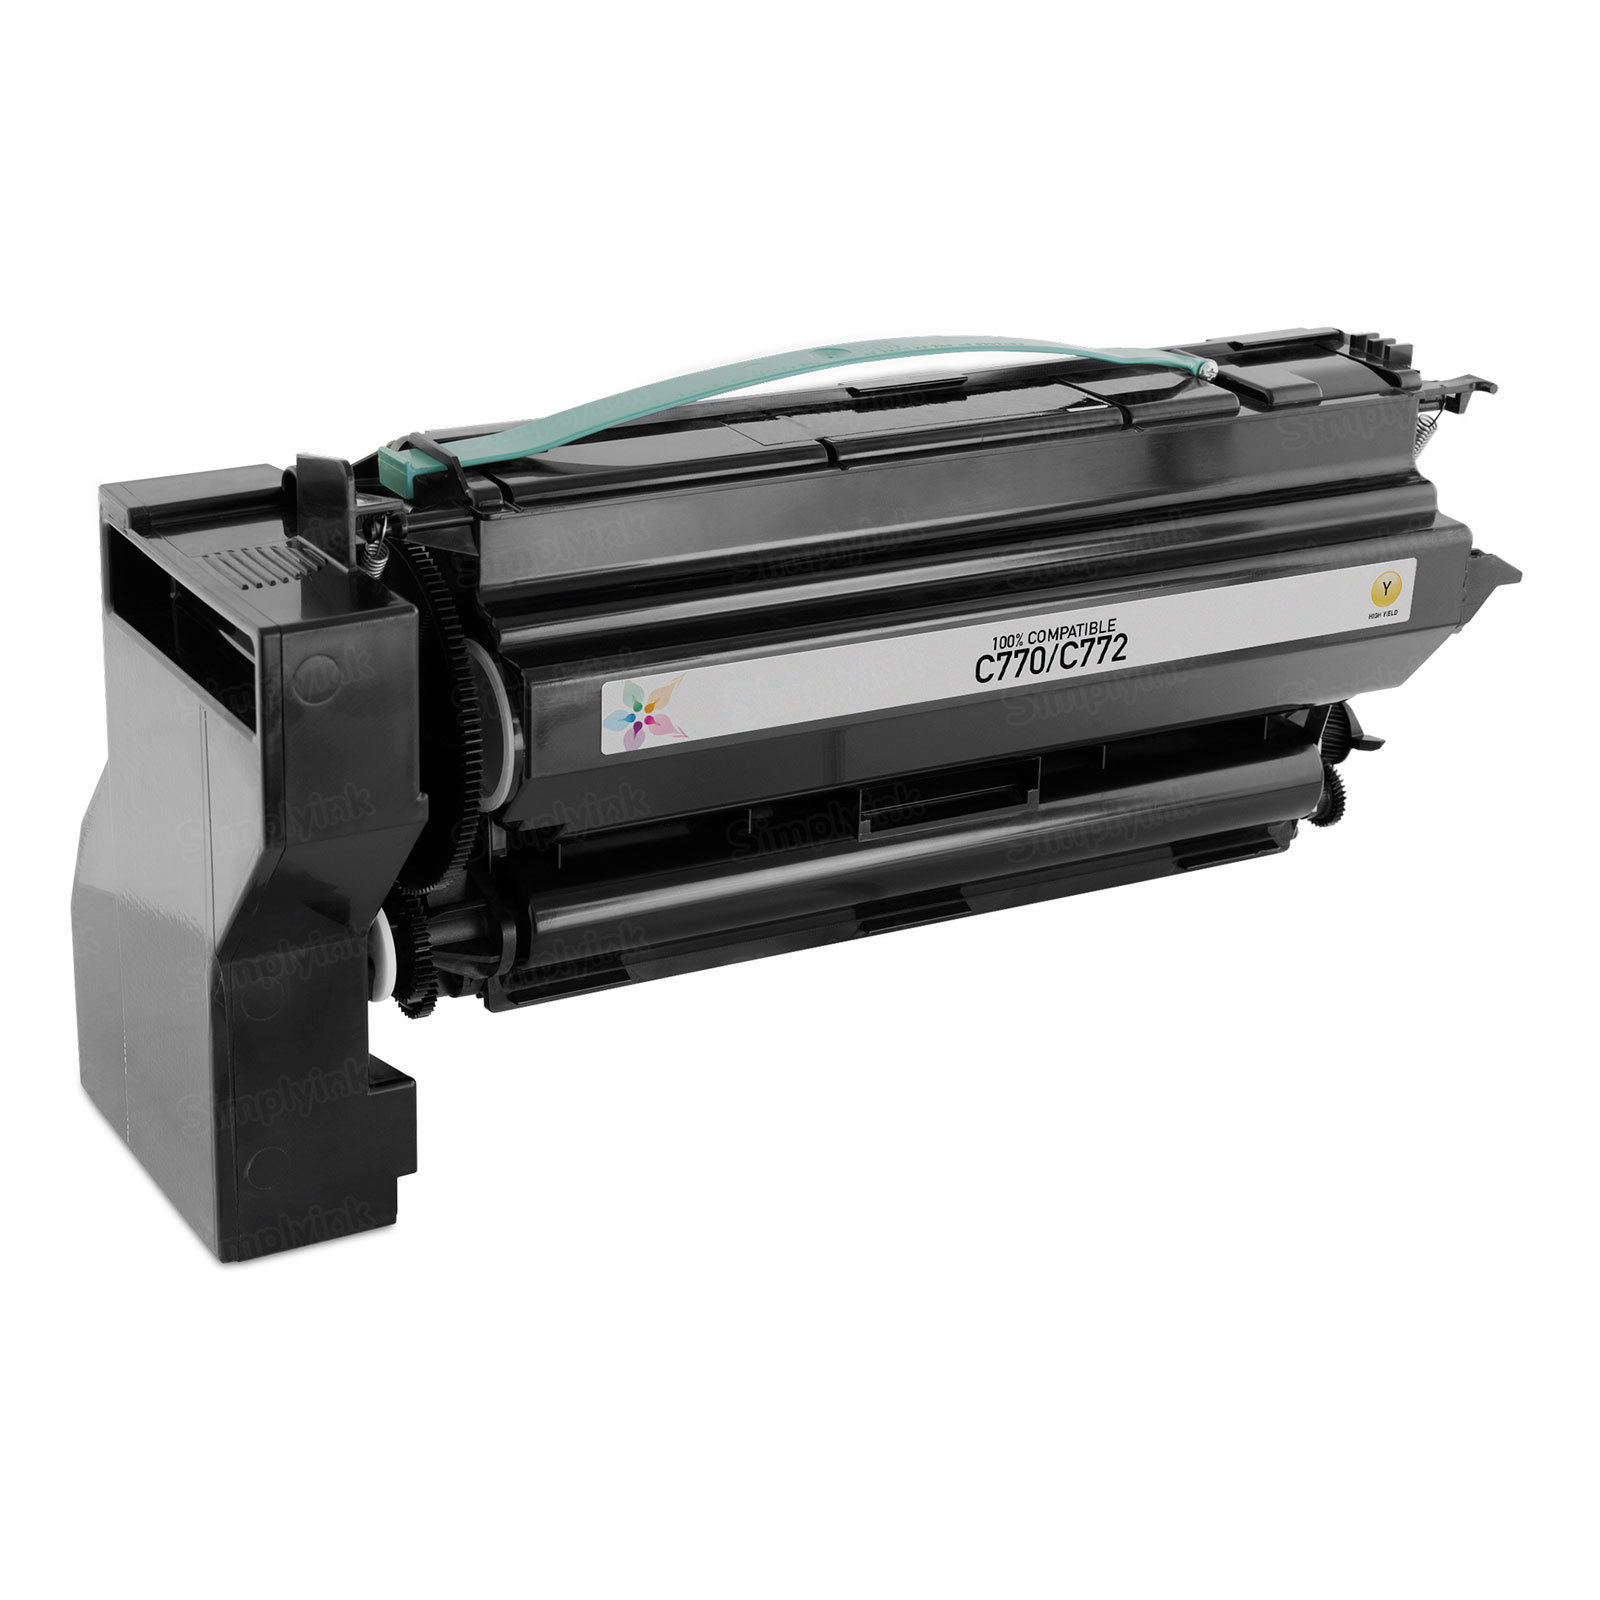 Remanufactured C7702YH HY Yellow Toner Cartridge for Lexmark C770/C772